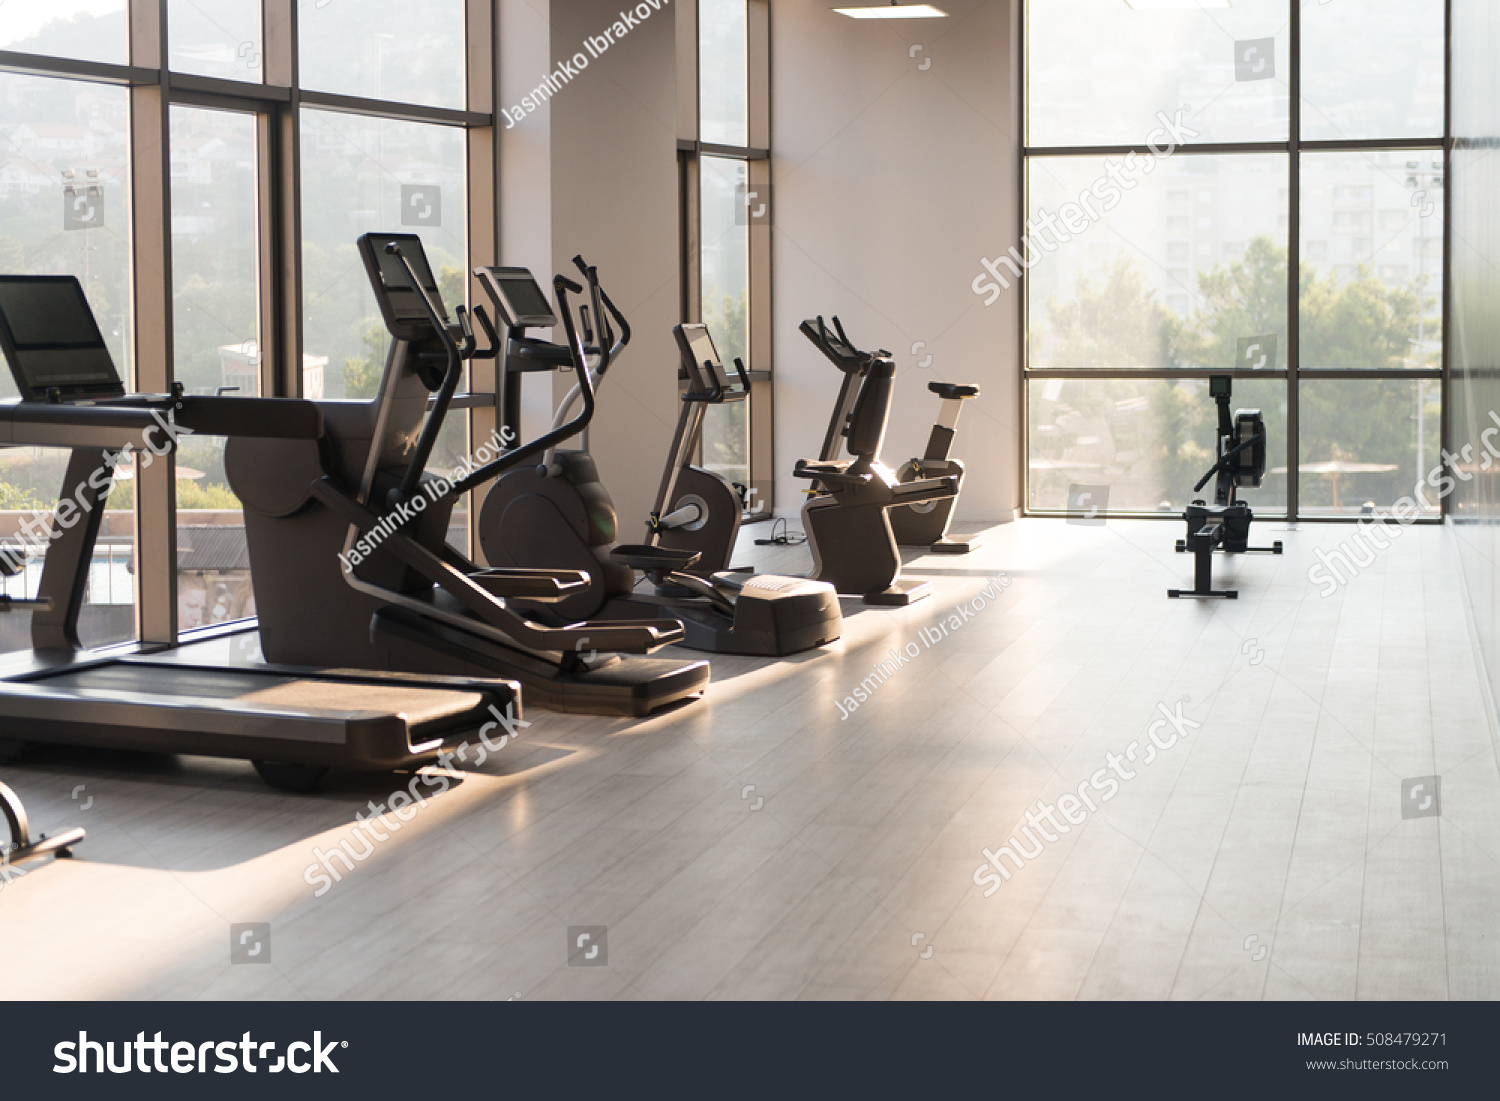 Fitnessraum modern  Modern Gym Room Fitness Center Equipment Stock Photo 508479271 ...